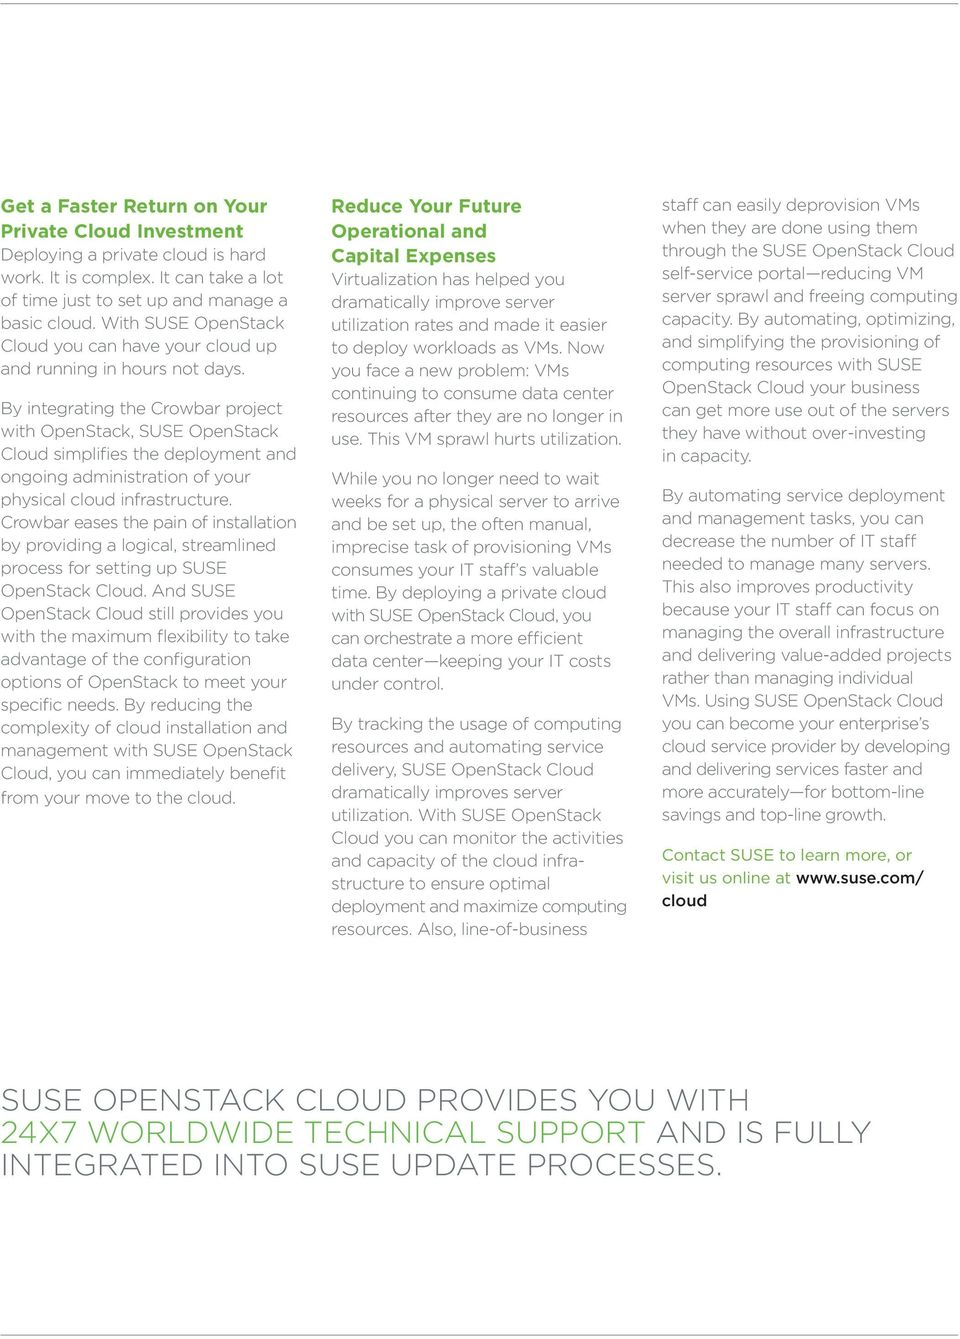 By integrating the Crowbar project with OpenStack, SUSE OpenStack Cloud simplifies the deployment and ongoing administration of your physical cloud infrastructure.